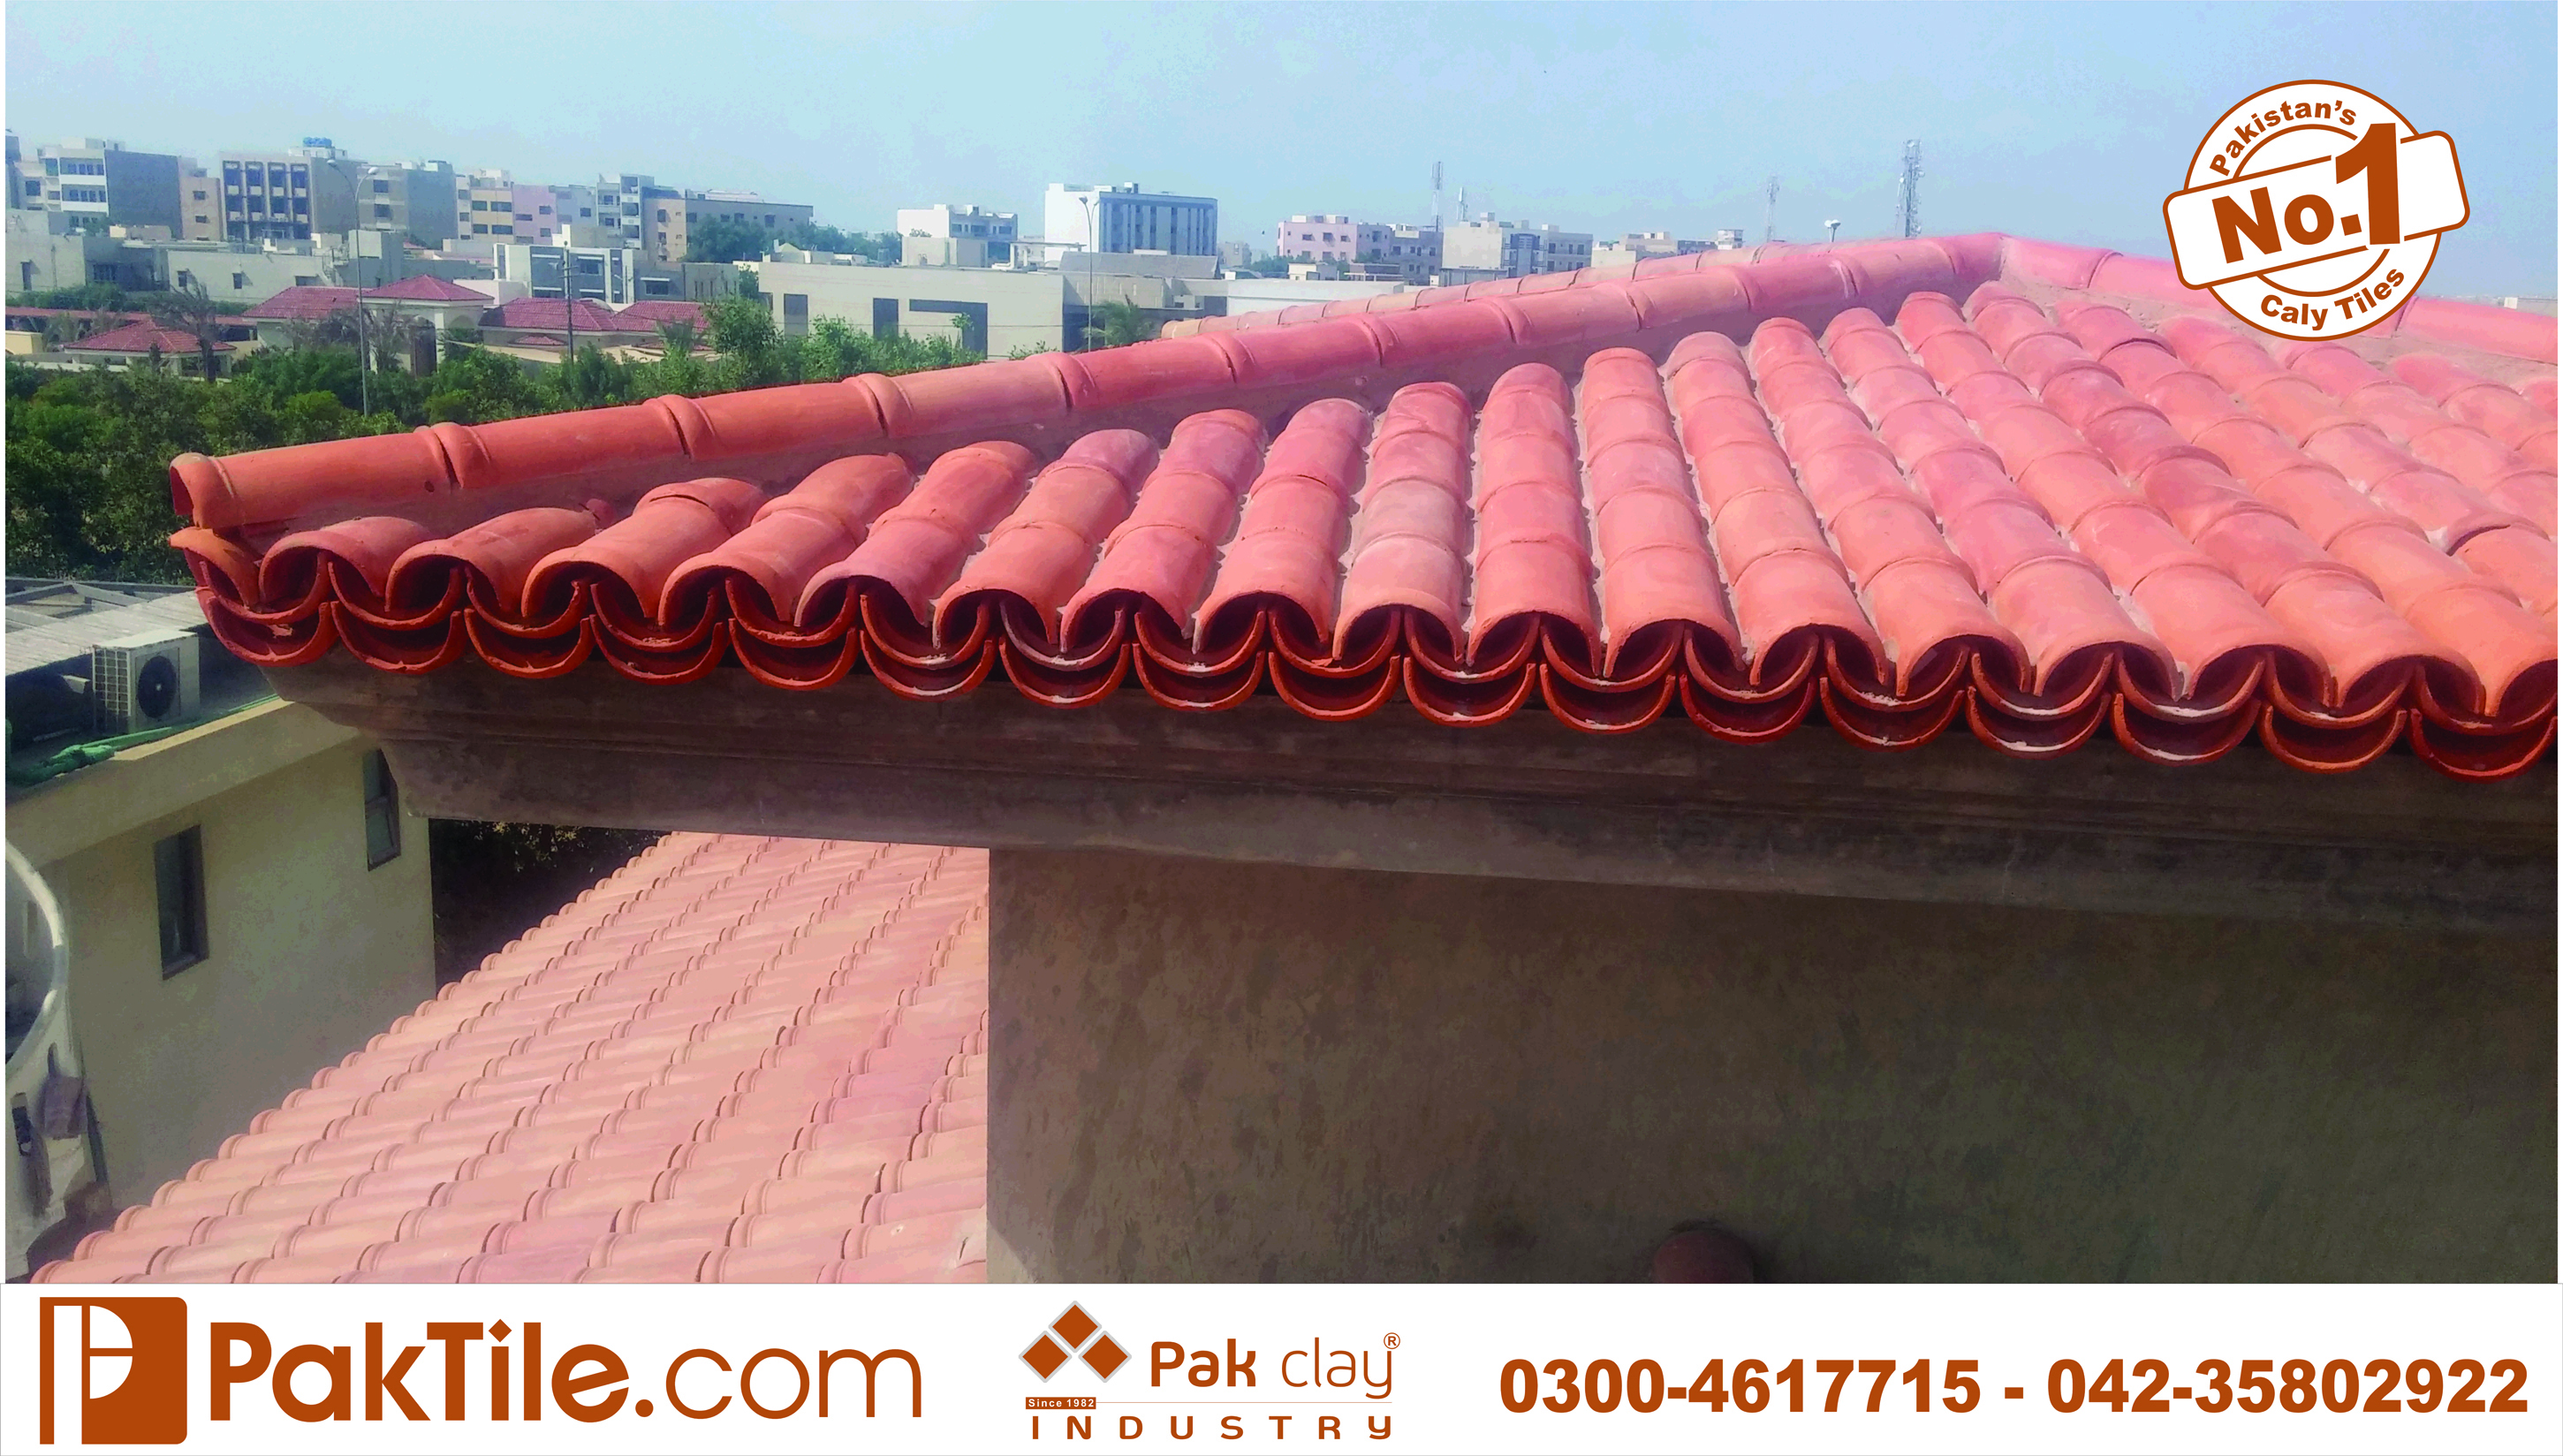 Buy factory online shop colorful ceramic white khaprail roof tiles low price house design in dha karachi images